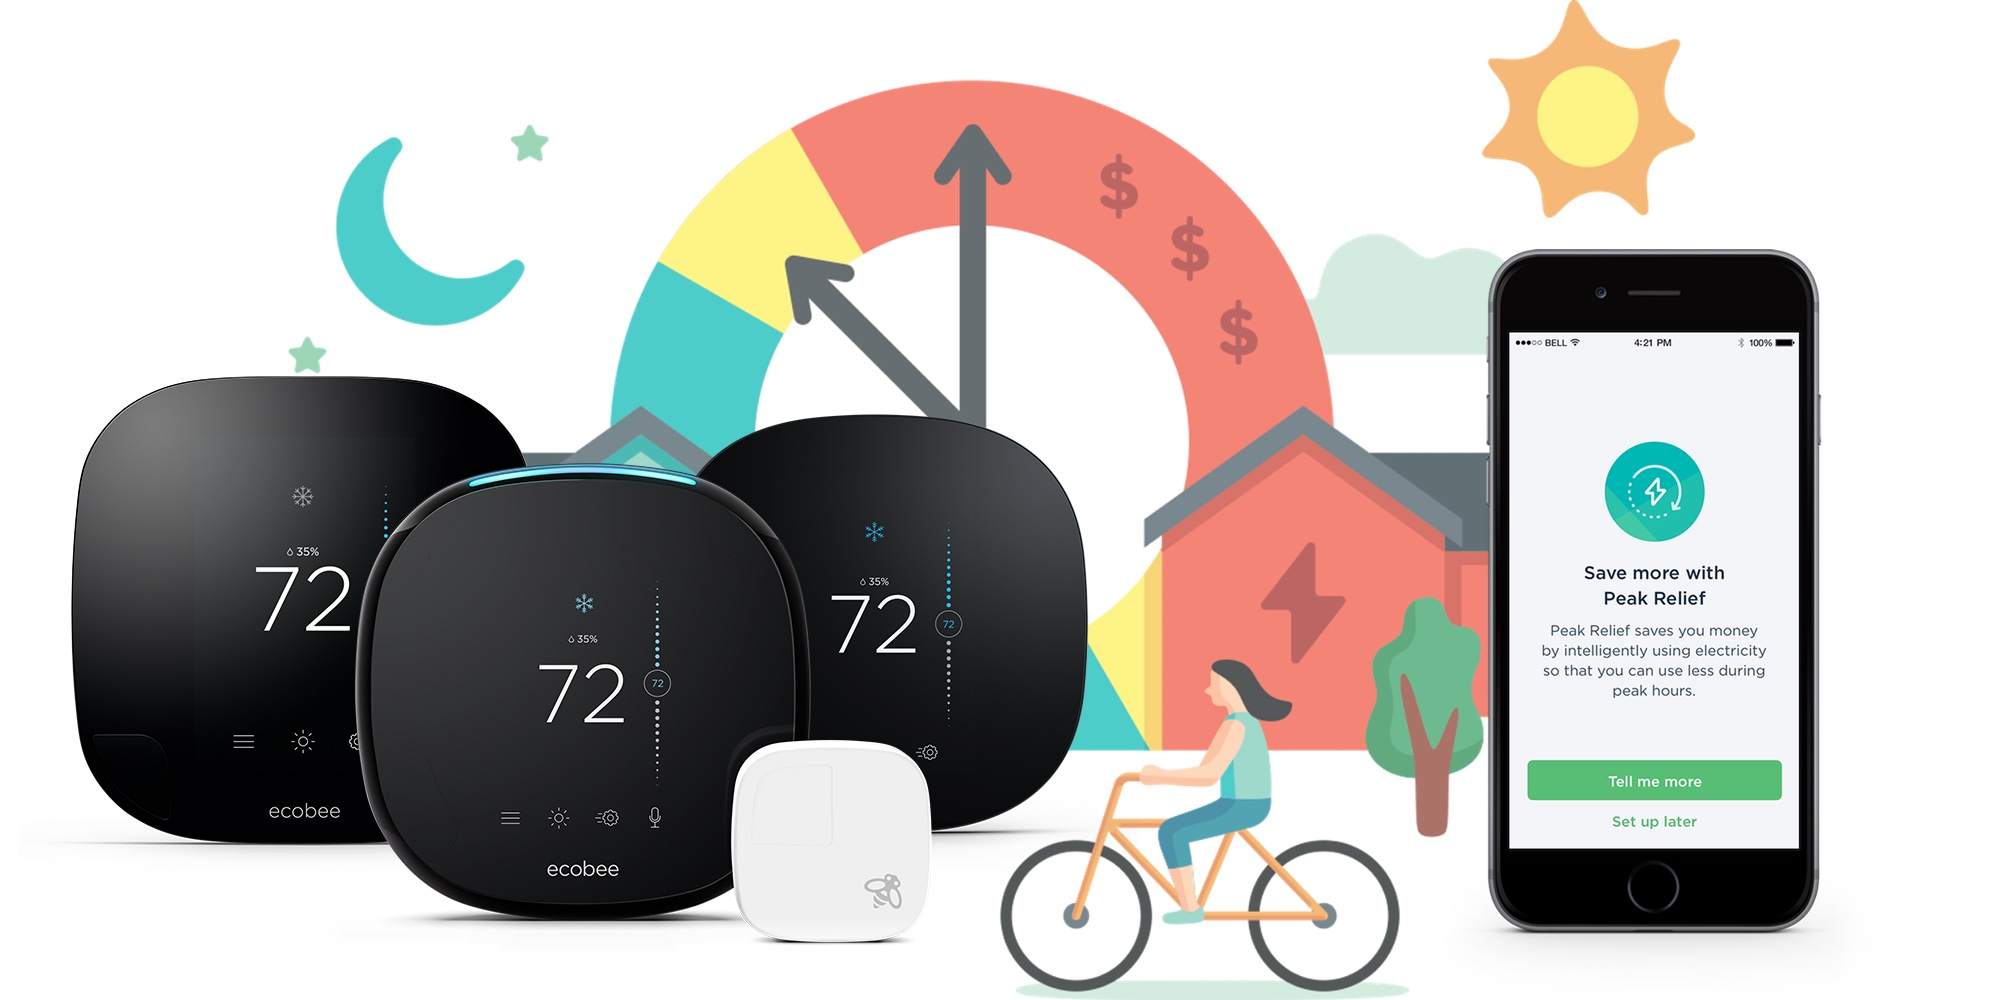 ecobee thermostat's new Peak Relief feature cuts down on energy usage, saves you money